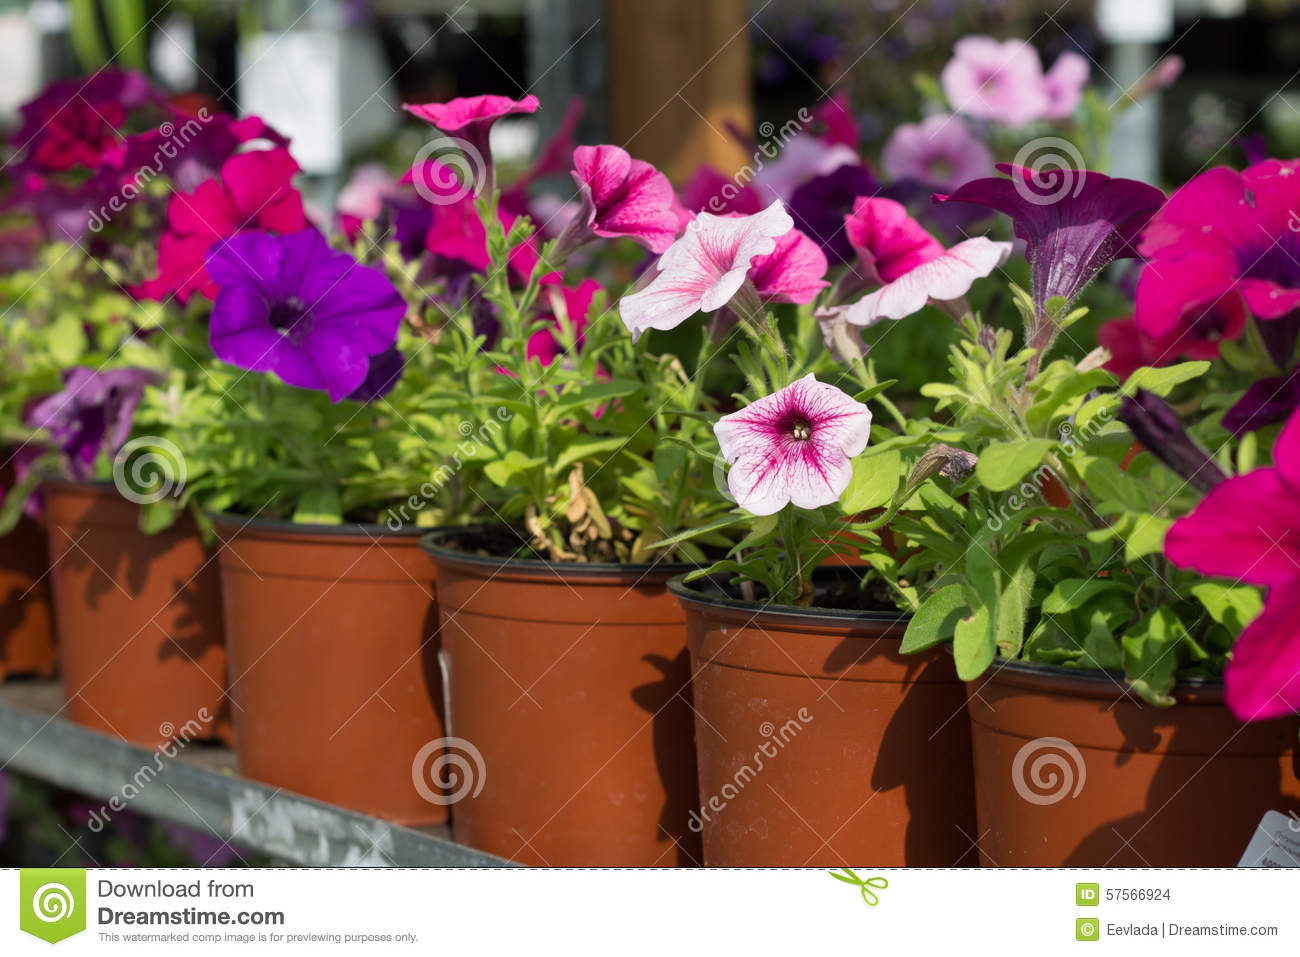 Flowers petunias in pots stock photo image 57566924 - Growing petunias pots balconies porches ...